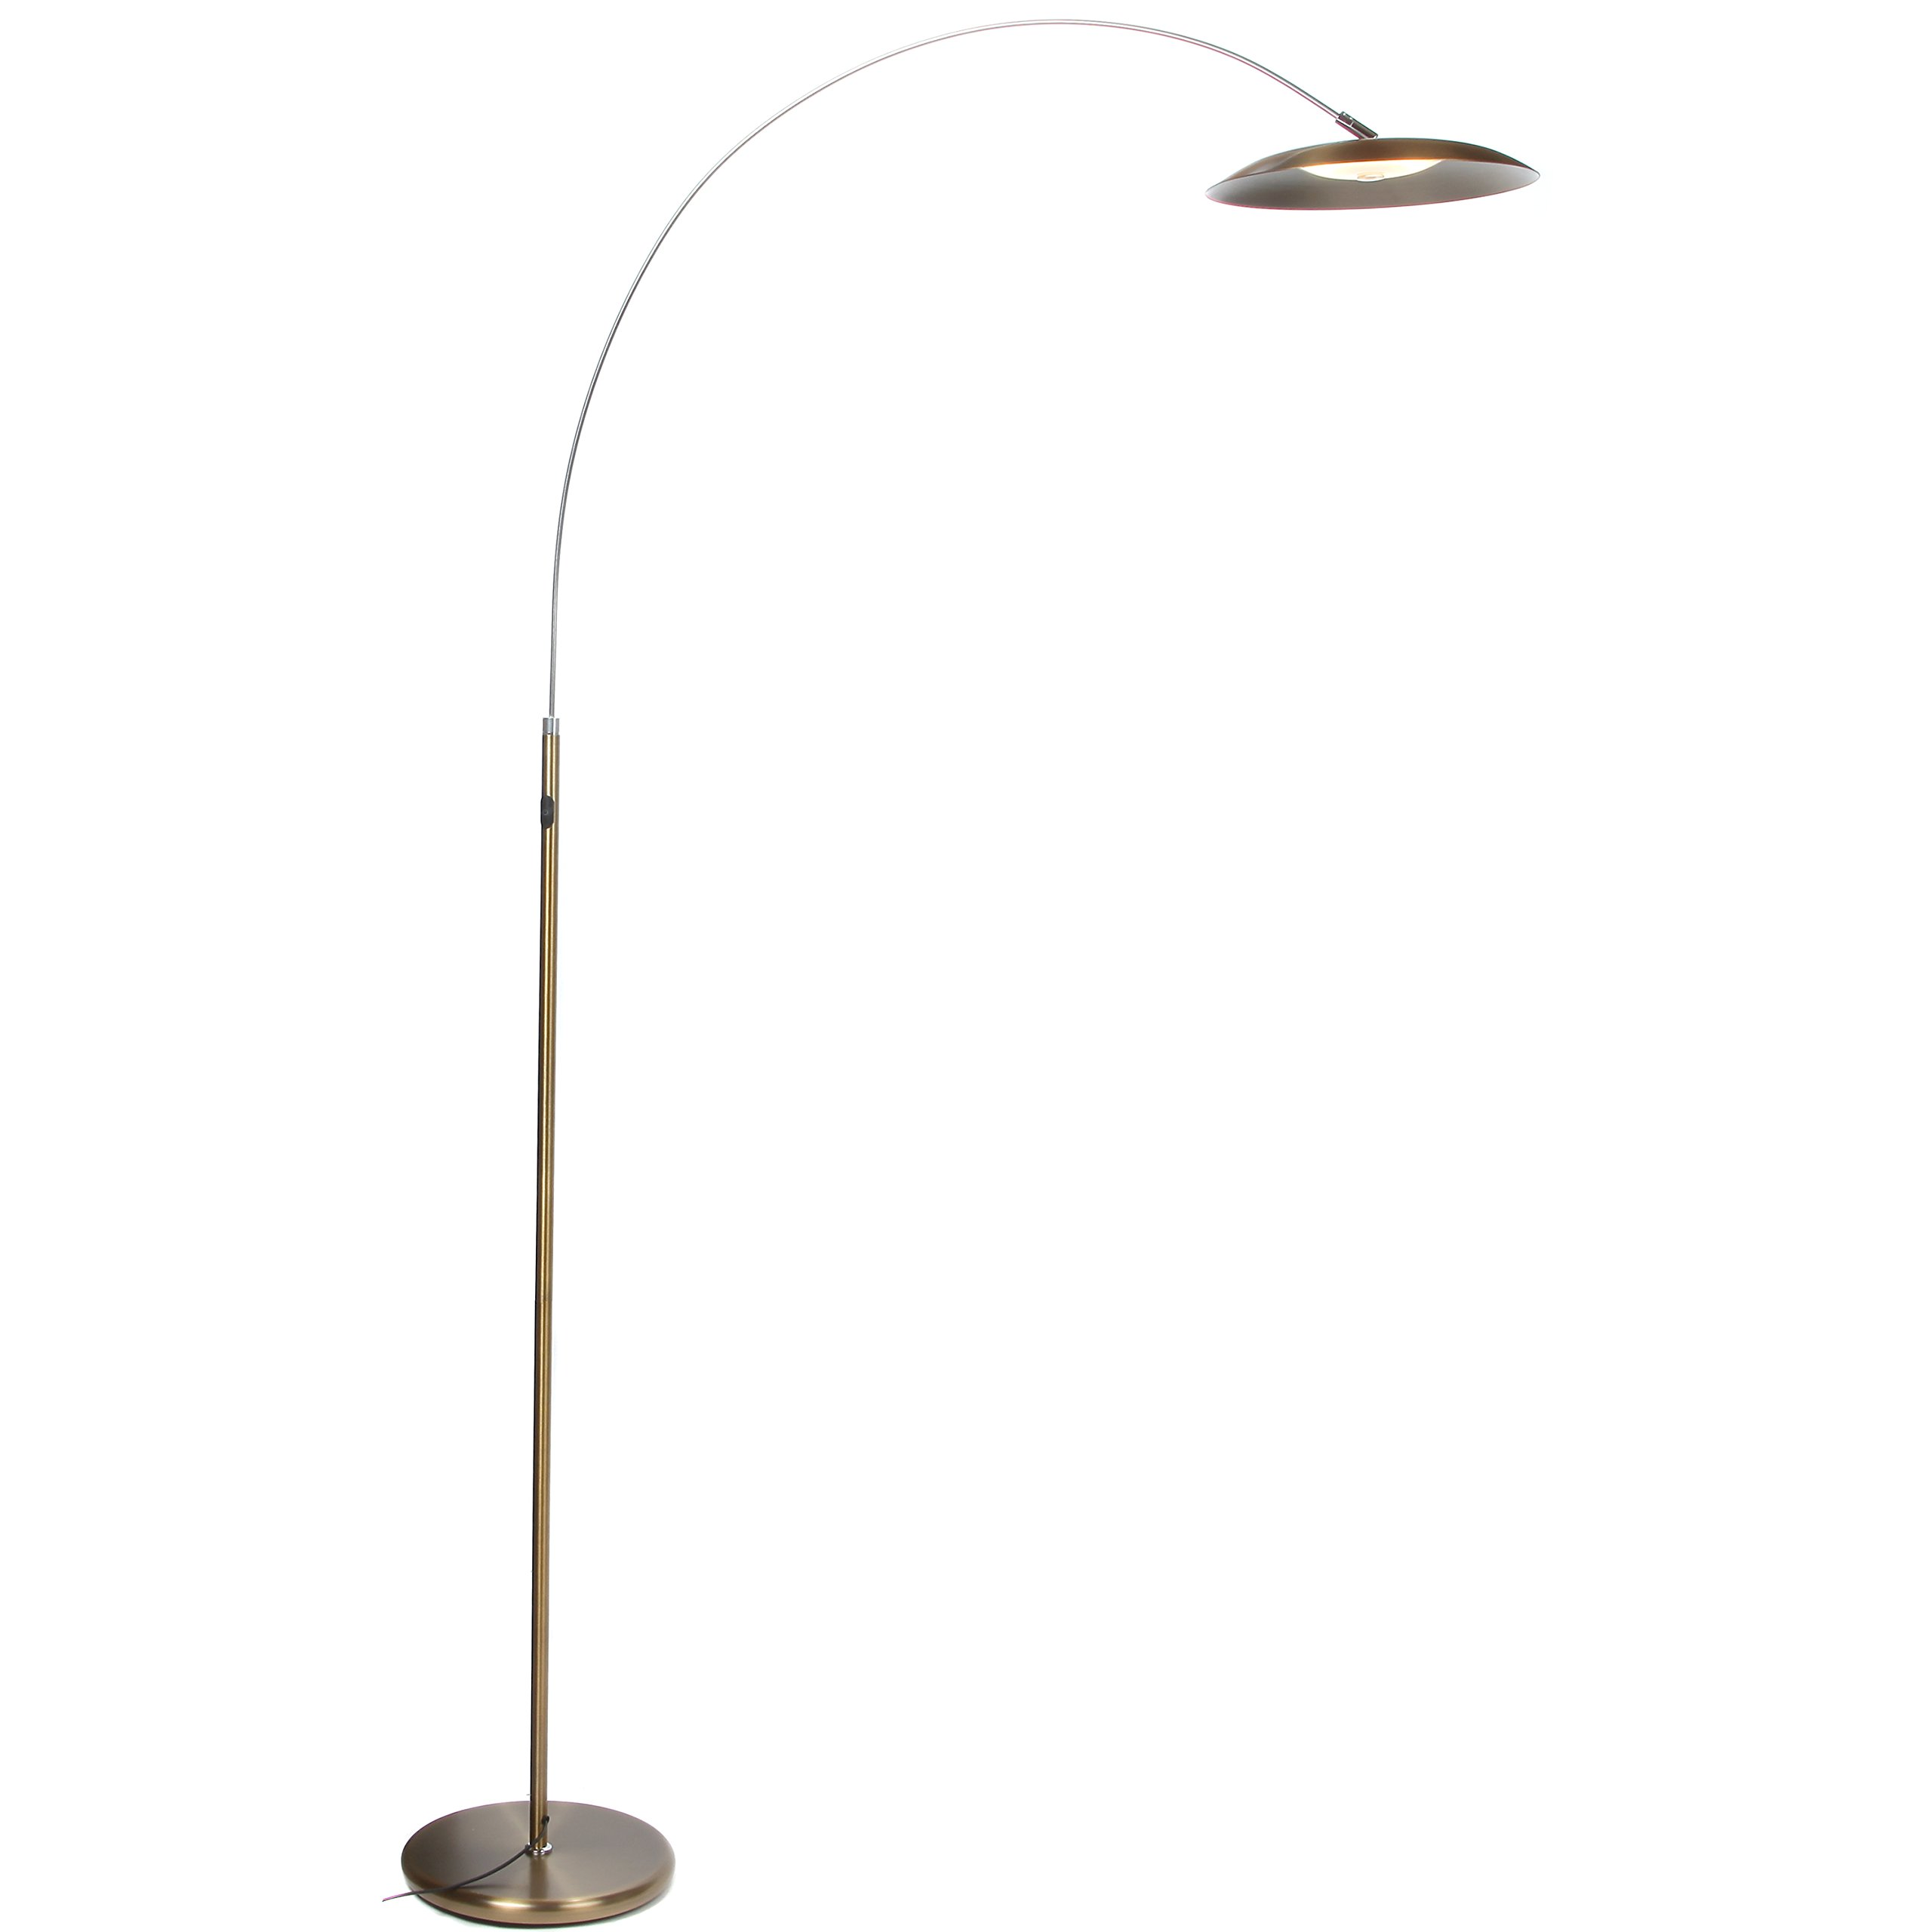 Brightech Atlas LED Floor Lamp- Gold Dimmable Contemporary Modern Curved Arc Lamp- Tall Pole Standing Industrial Lamp with Ambient Lighting for Living Room Bedroom Office Dorm (Antique Brass)